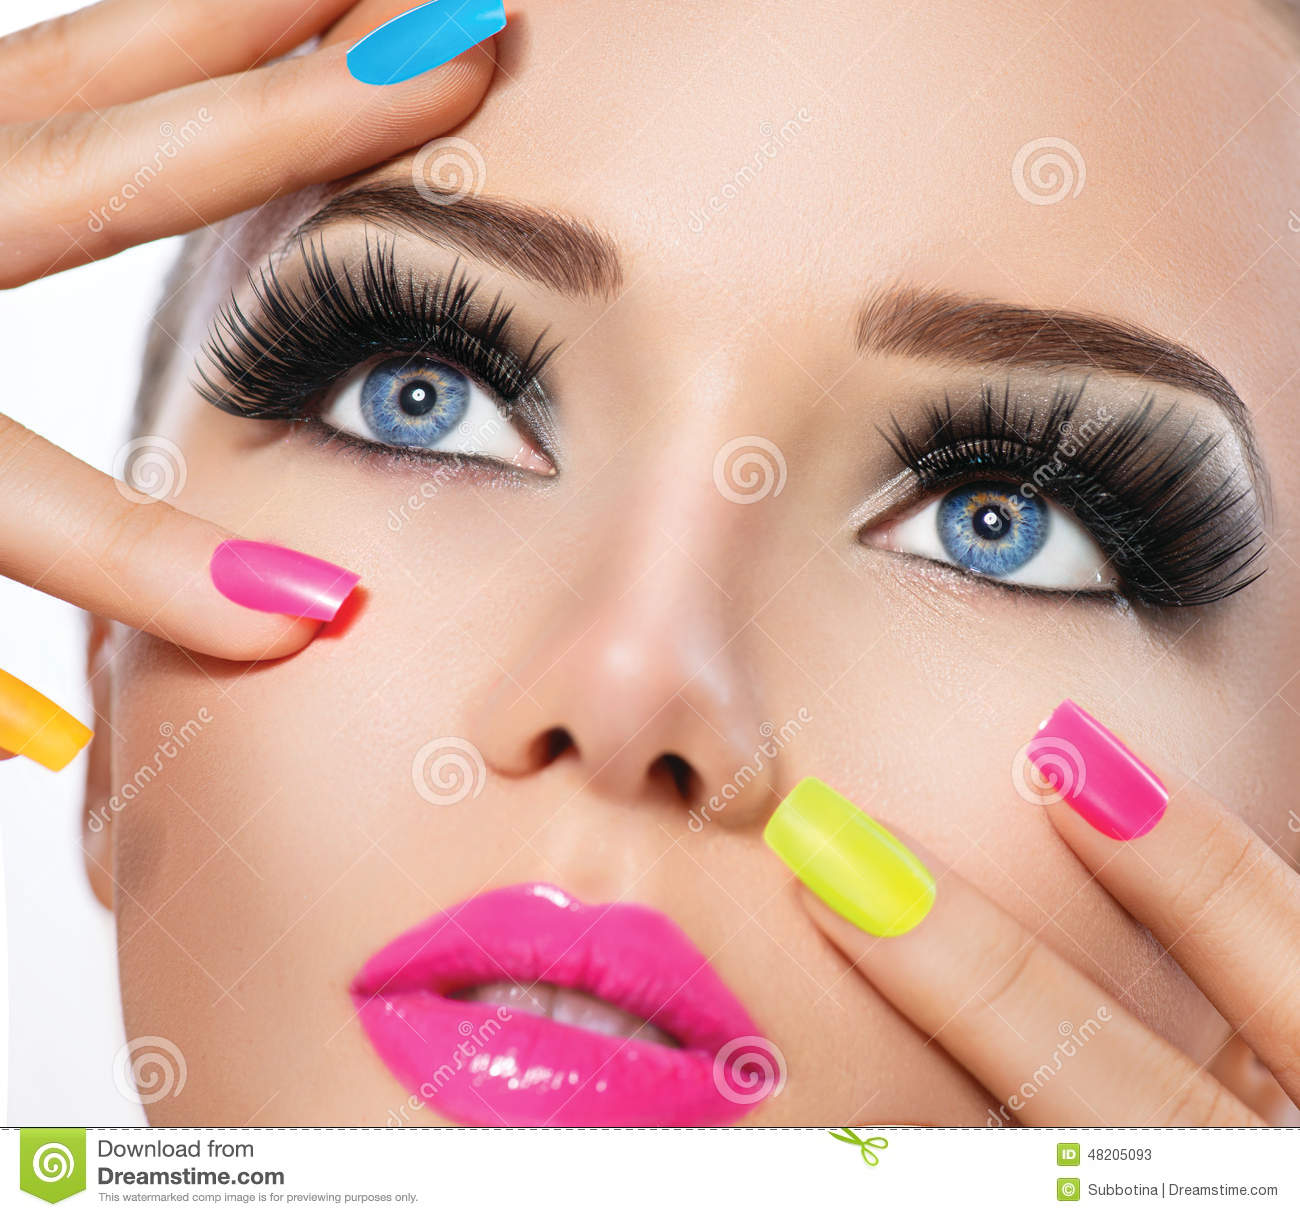 beauty-girl-colorful-nail-polish-portrait-vivid-makeup-48205093.jpg